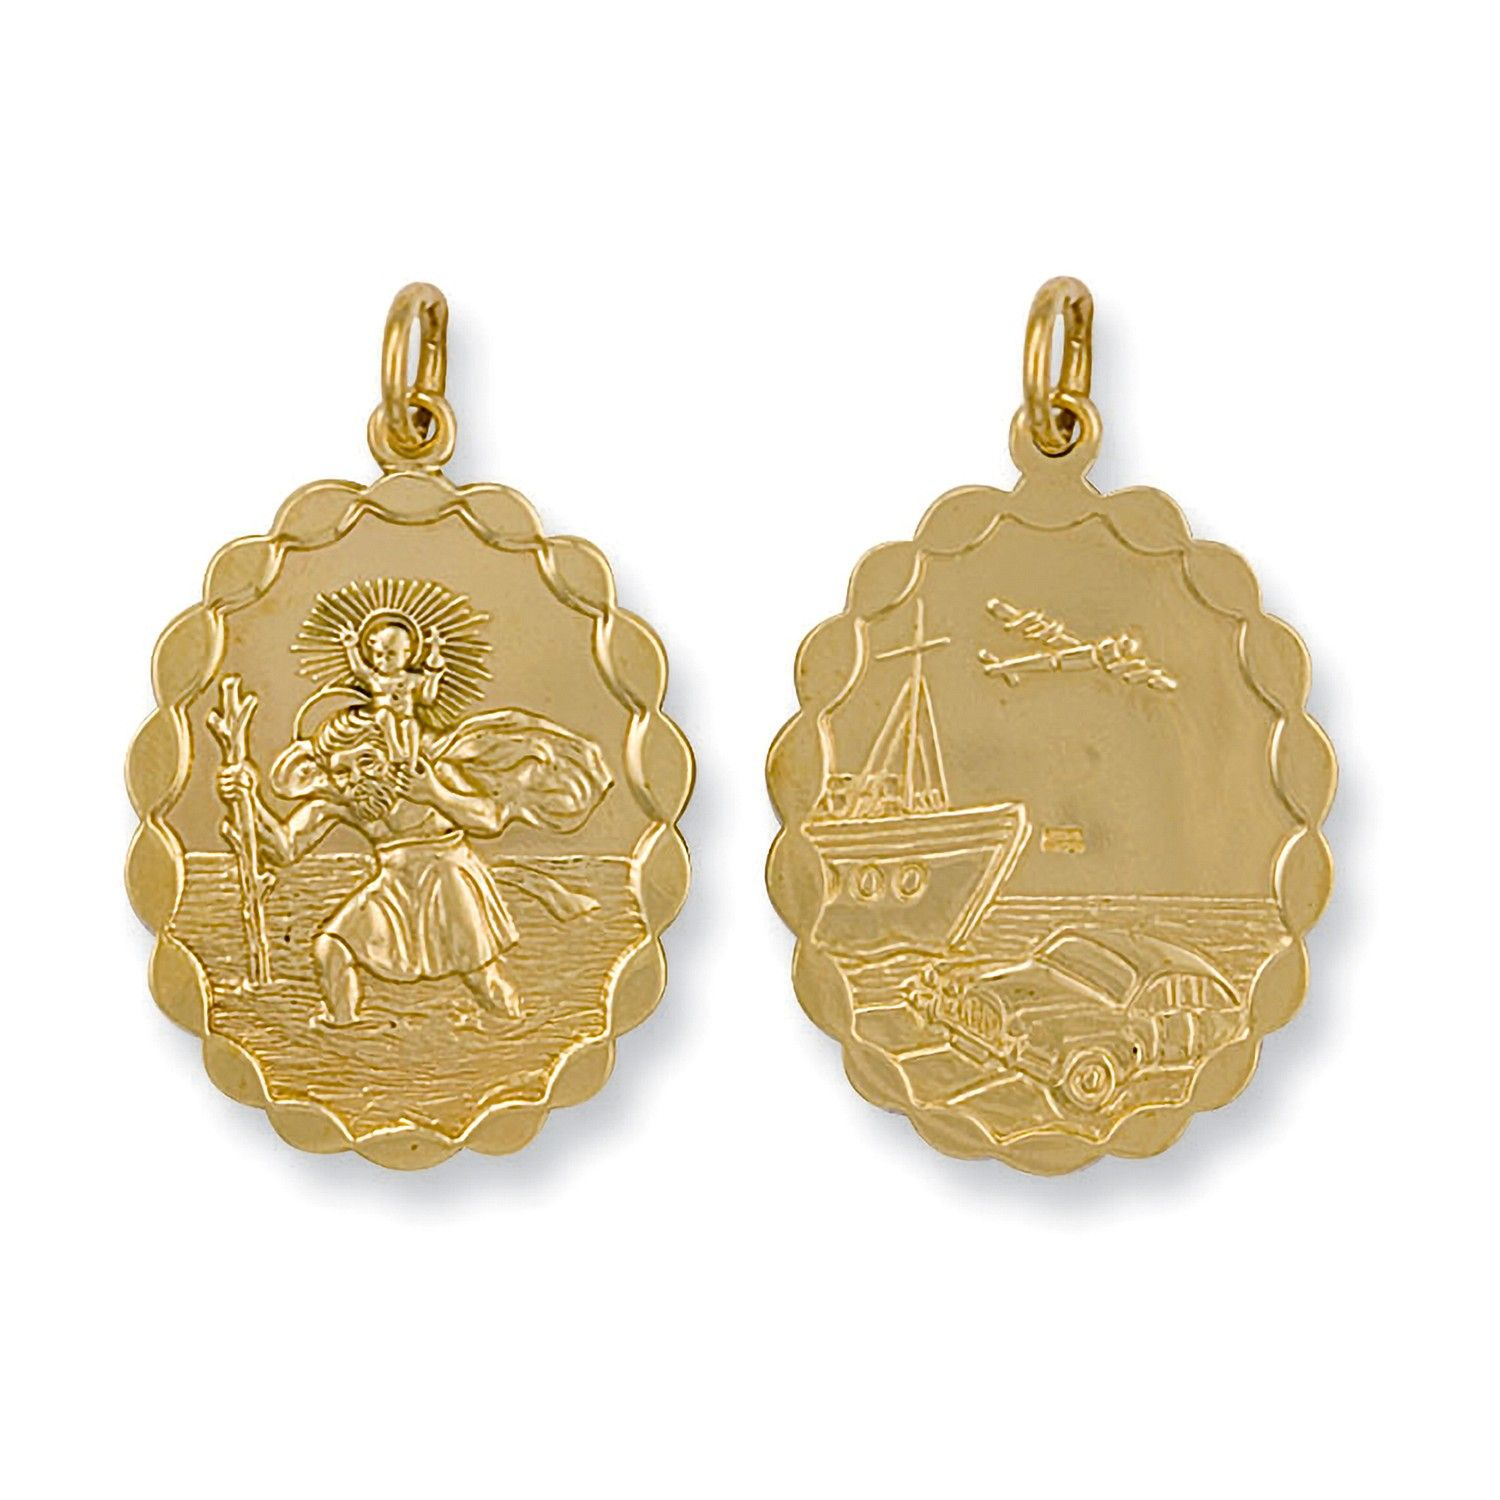 9ct Yellow Gold Double Sided Oval Shaped St Christopher Pendant